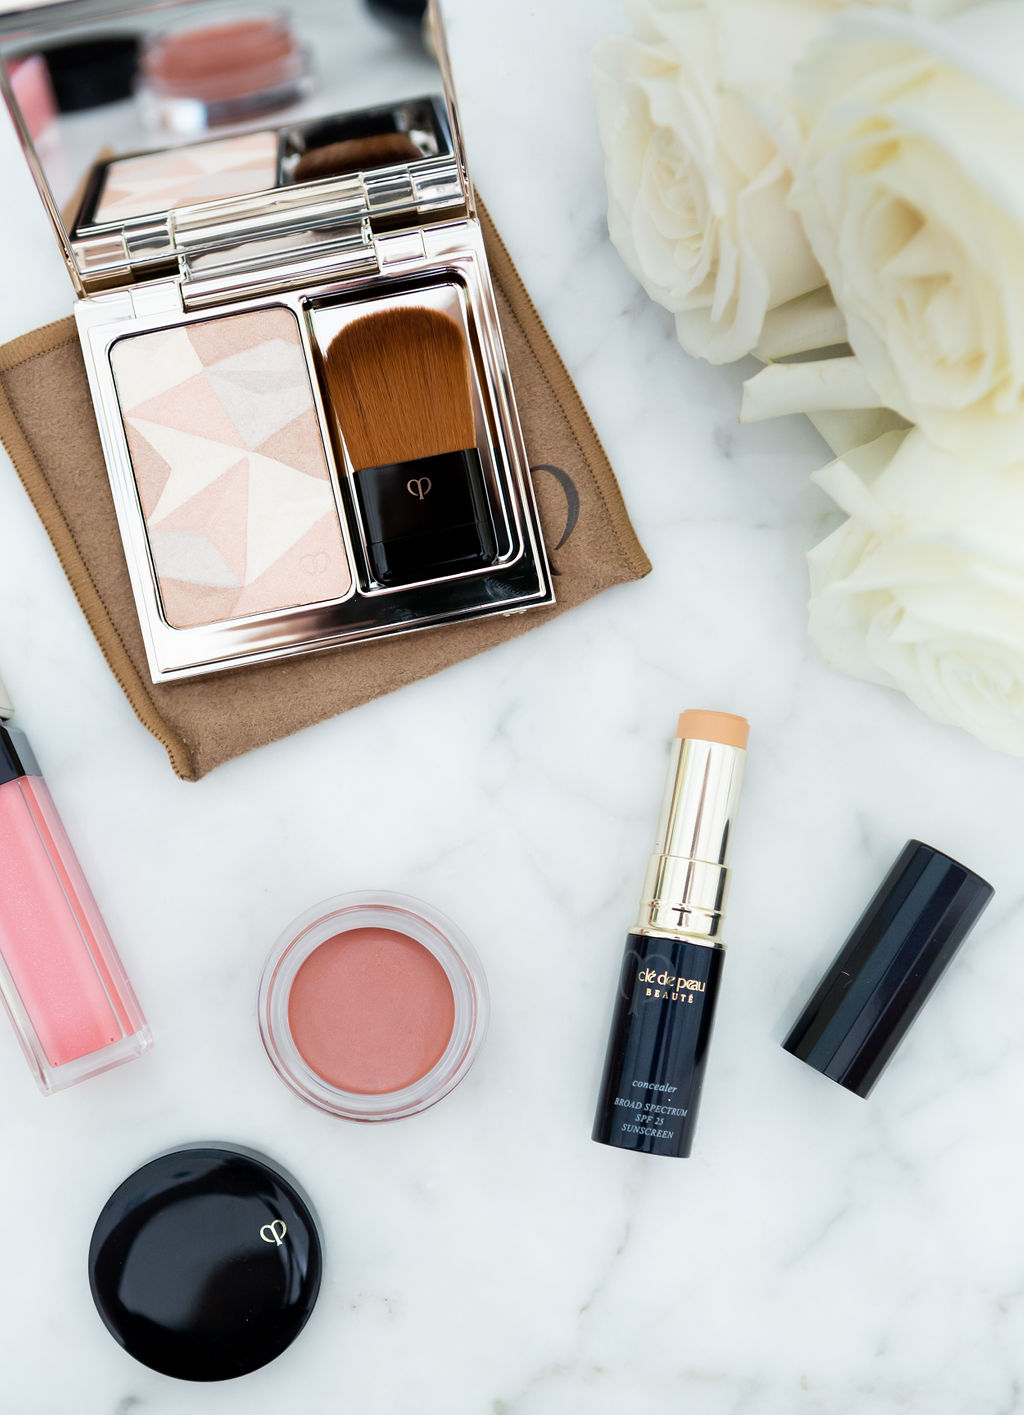 Nordstrom Beauty Discovery: Cle de Peau Concealer